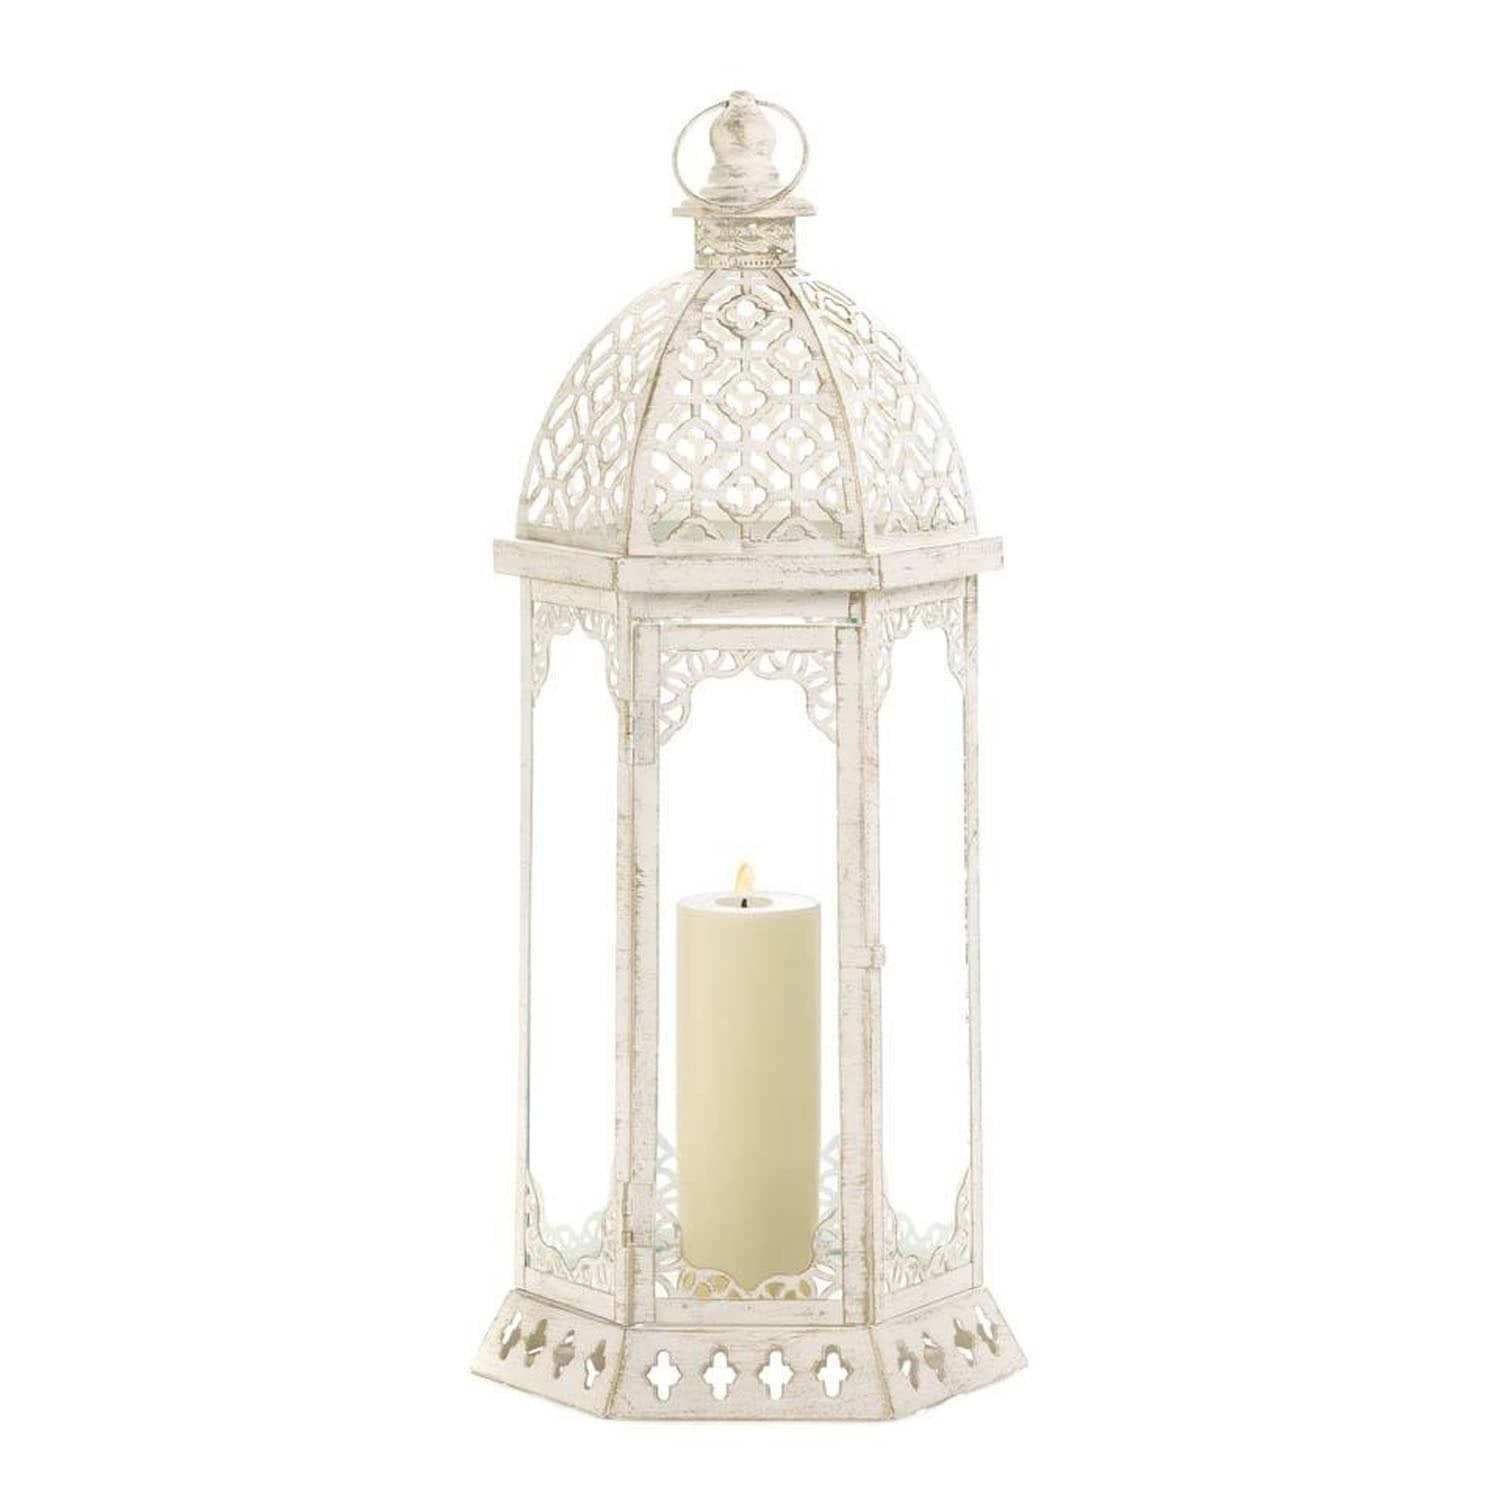 rfkgwxtbg lantern by swaying a stock window lights decorative with decor thumbnail video videoblocks footage